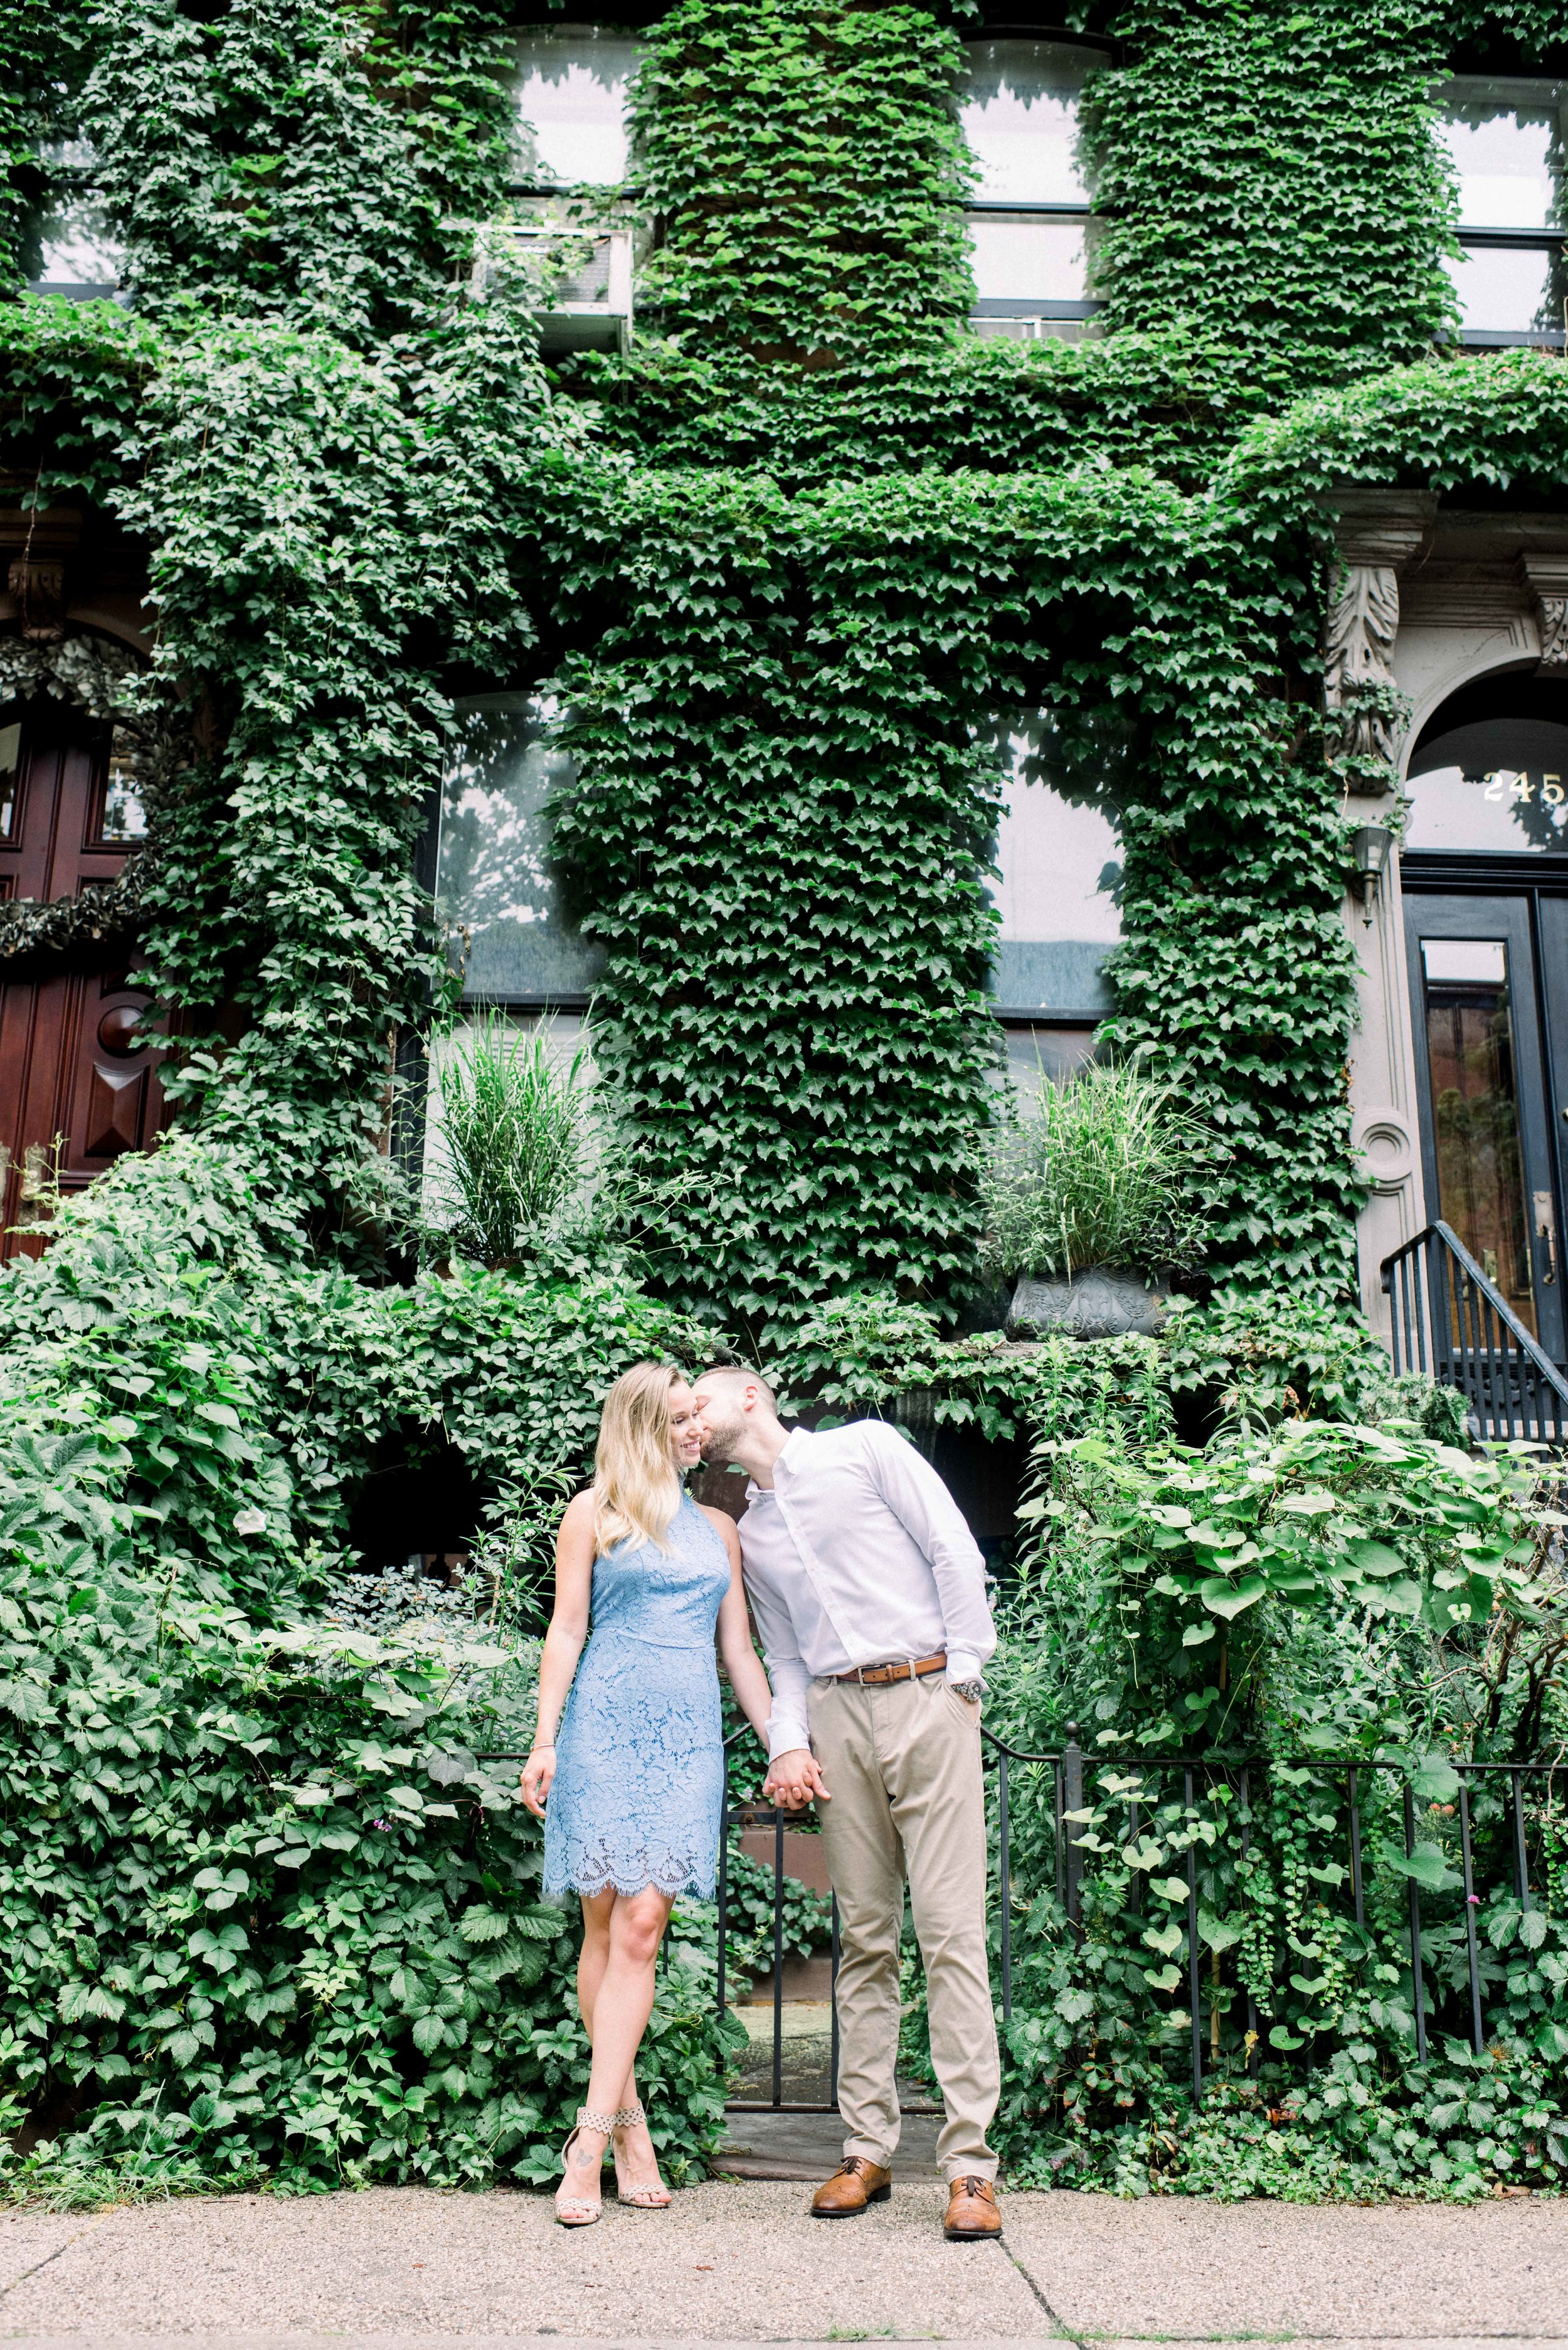 Engagement photo, brooklyn engagement, brownstone covered with ivy, brownstone, bride to be, brooklyn, cute, formal engagement session, casual engagement session, couple in love, college sweethearts, upasana mainali photography, upasana mainali